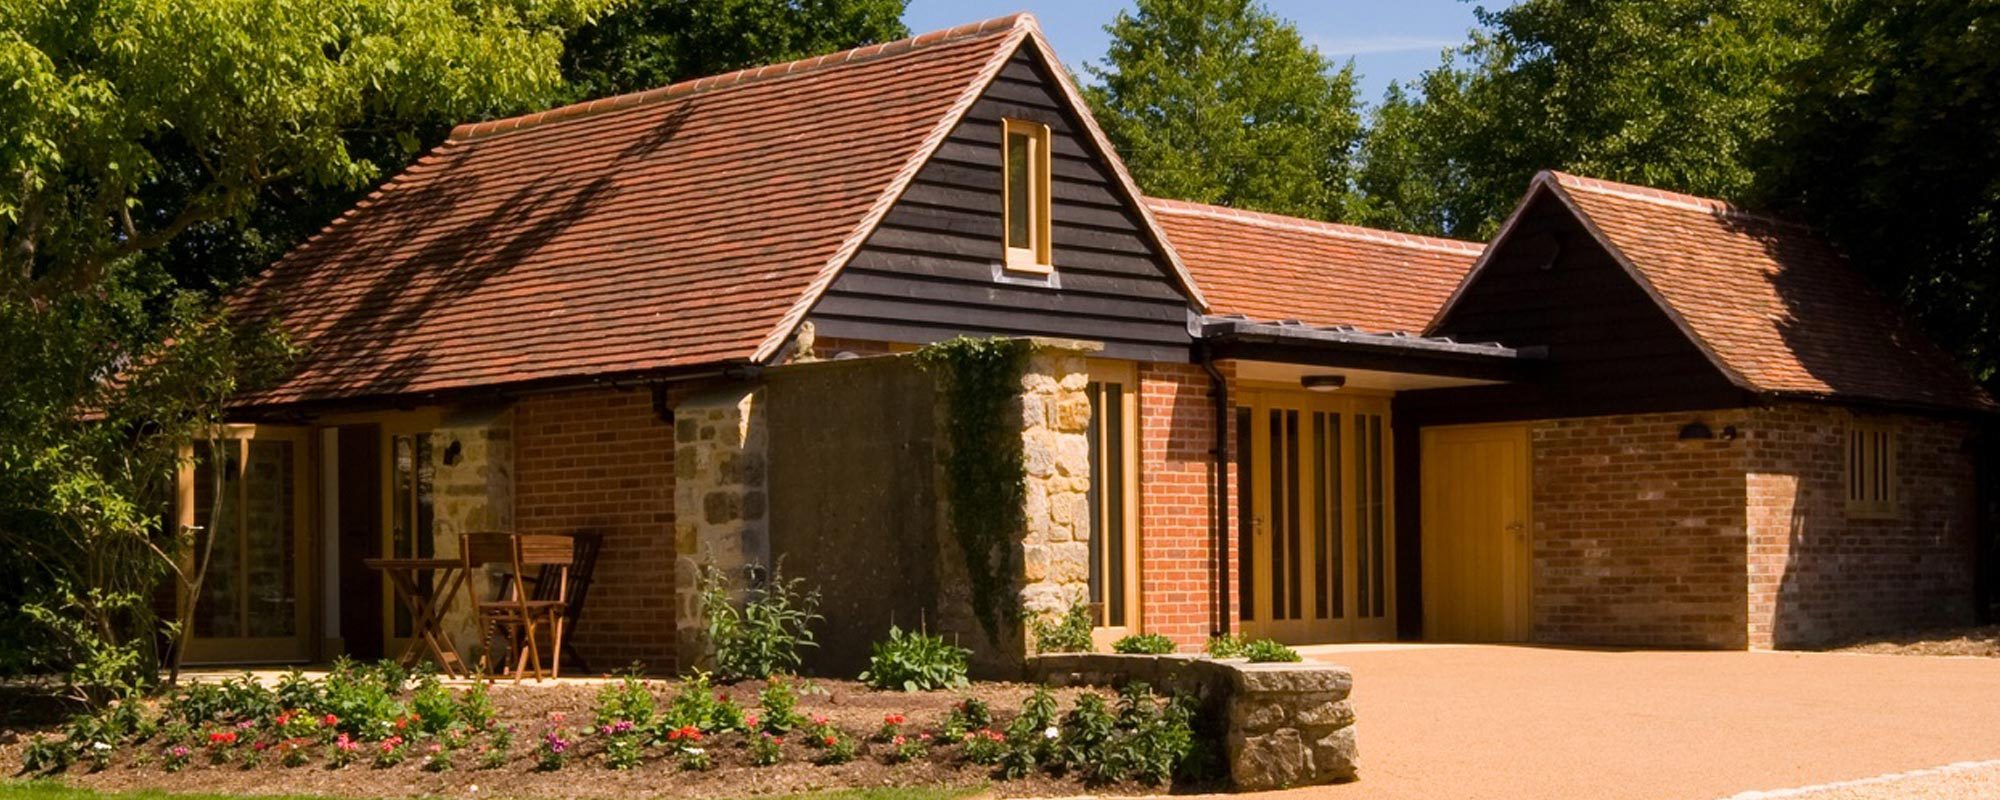 Exterior view of the house constructed by builders in East Sussex